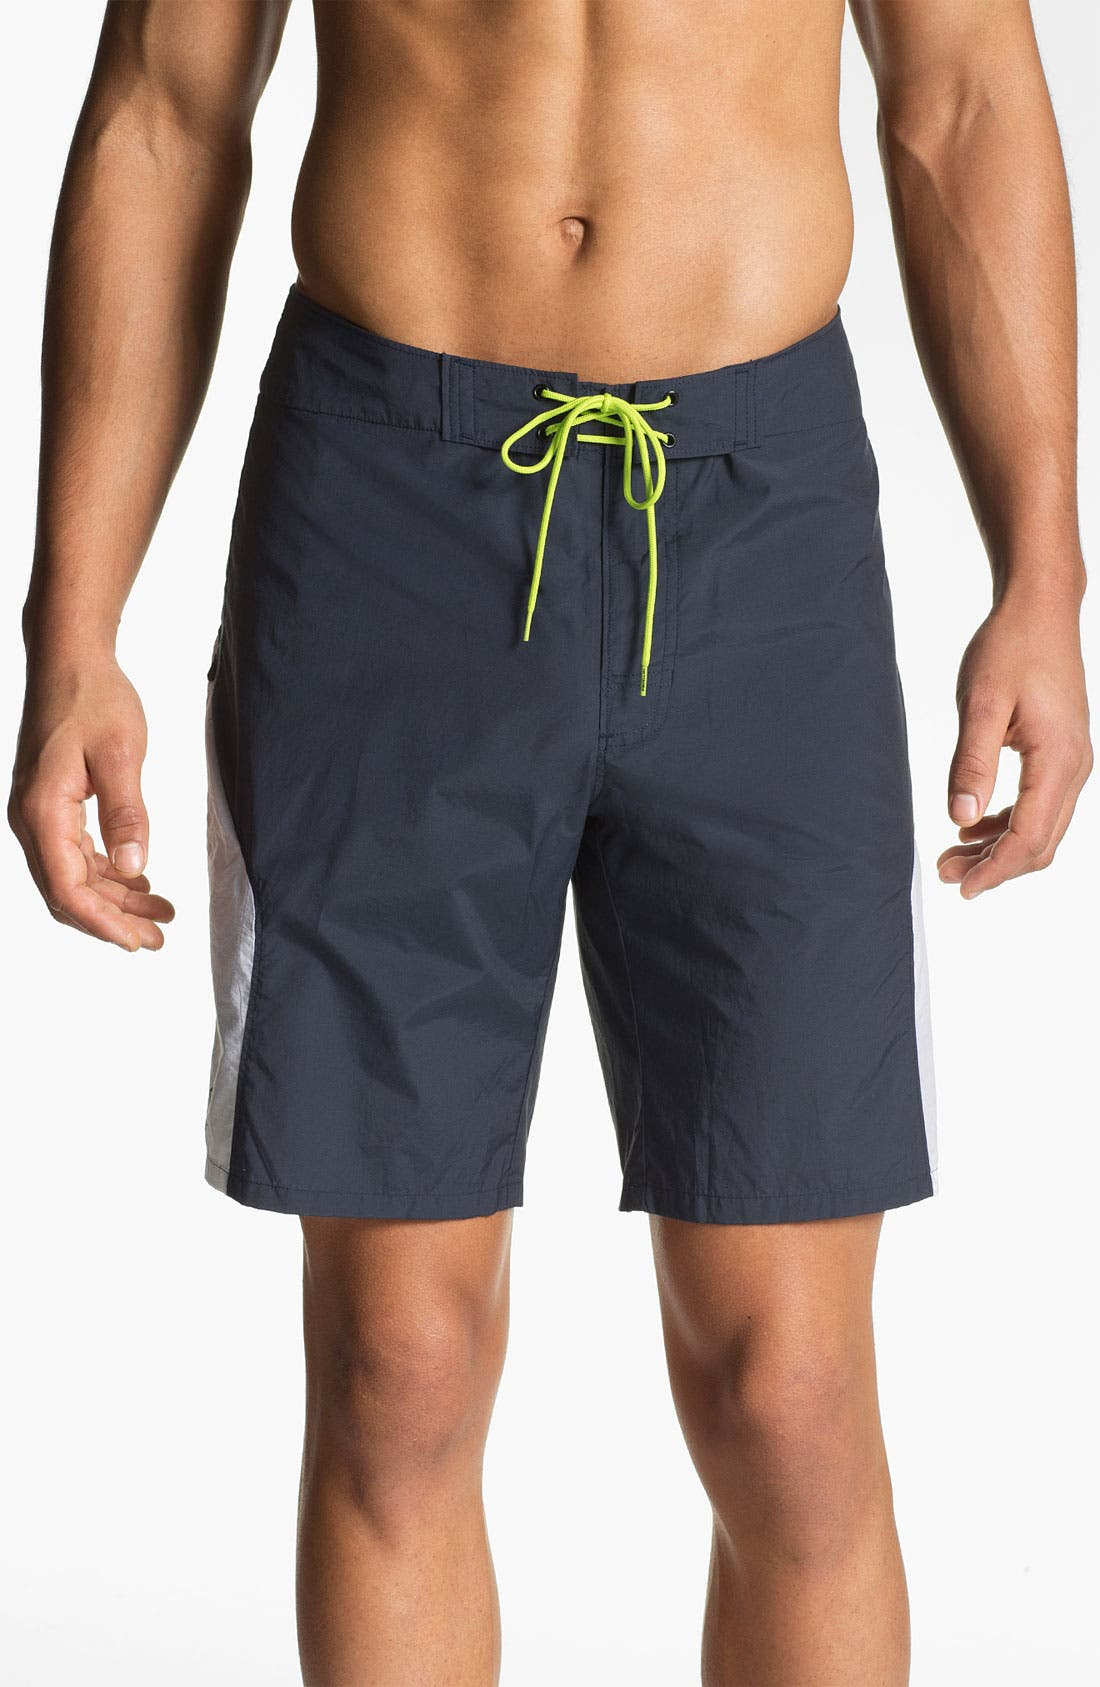 Alternate Image 1 Selected - Victorinox Swiss Army® 'Finn' Board Shorts